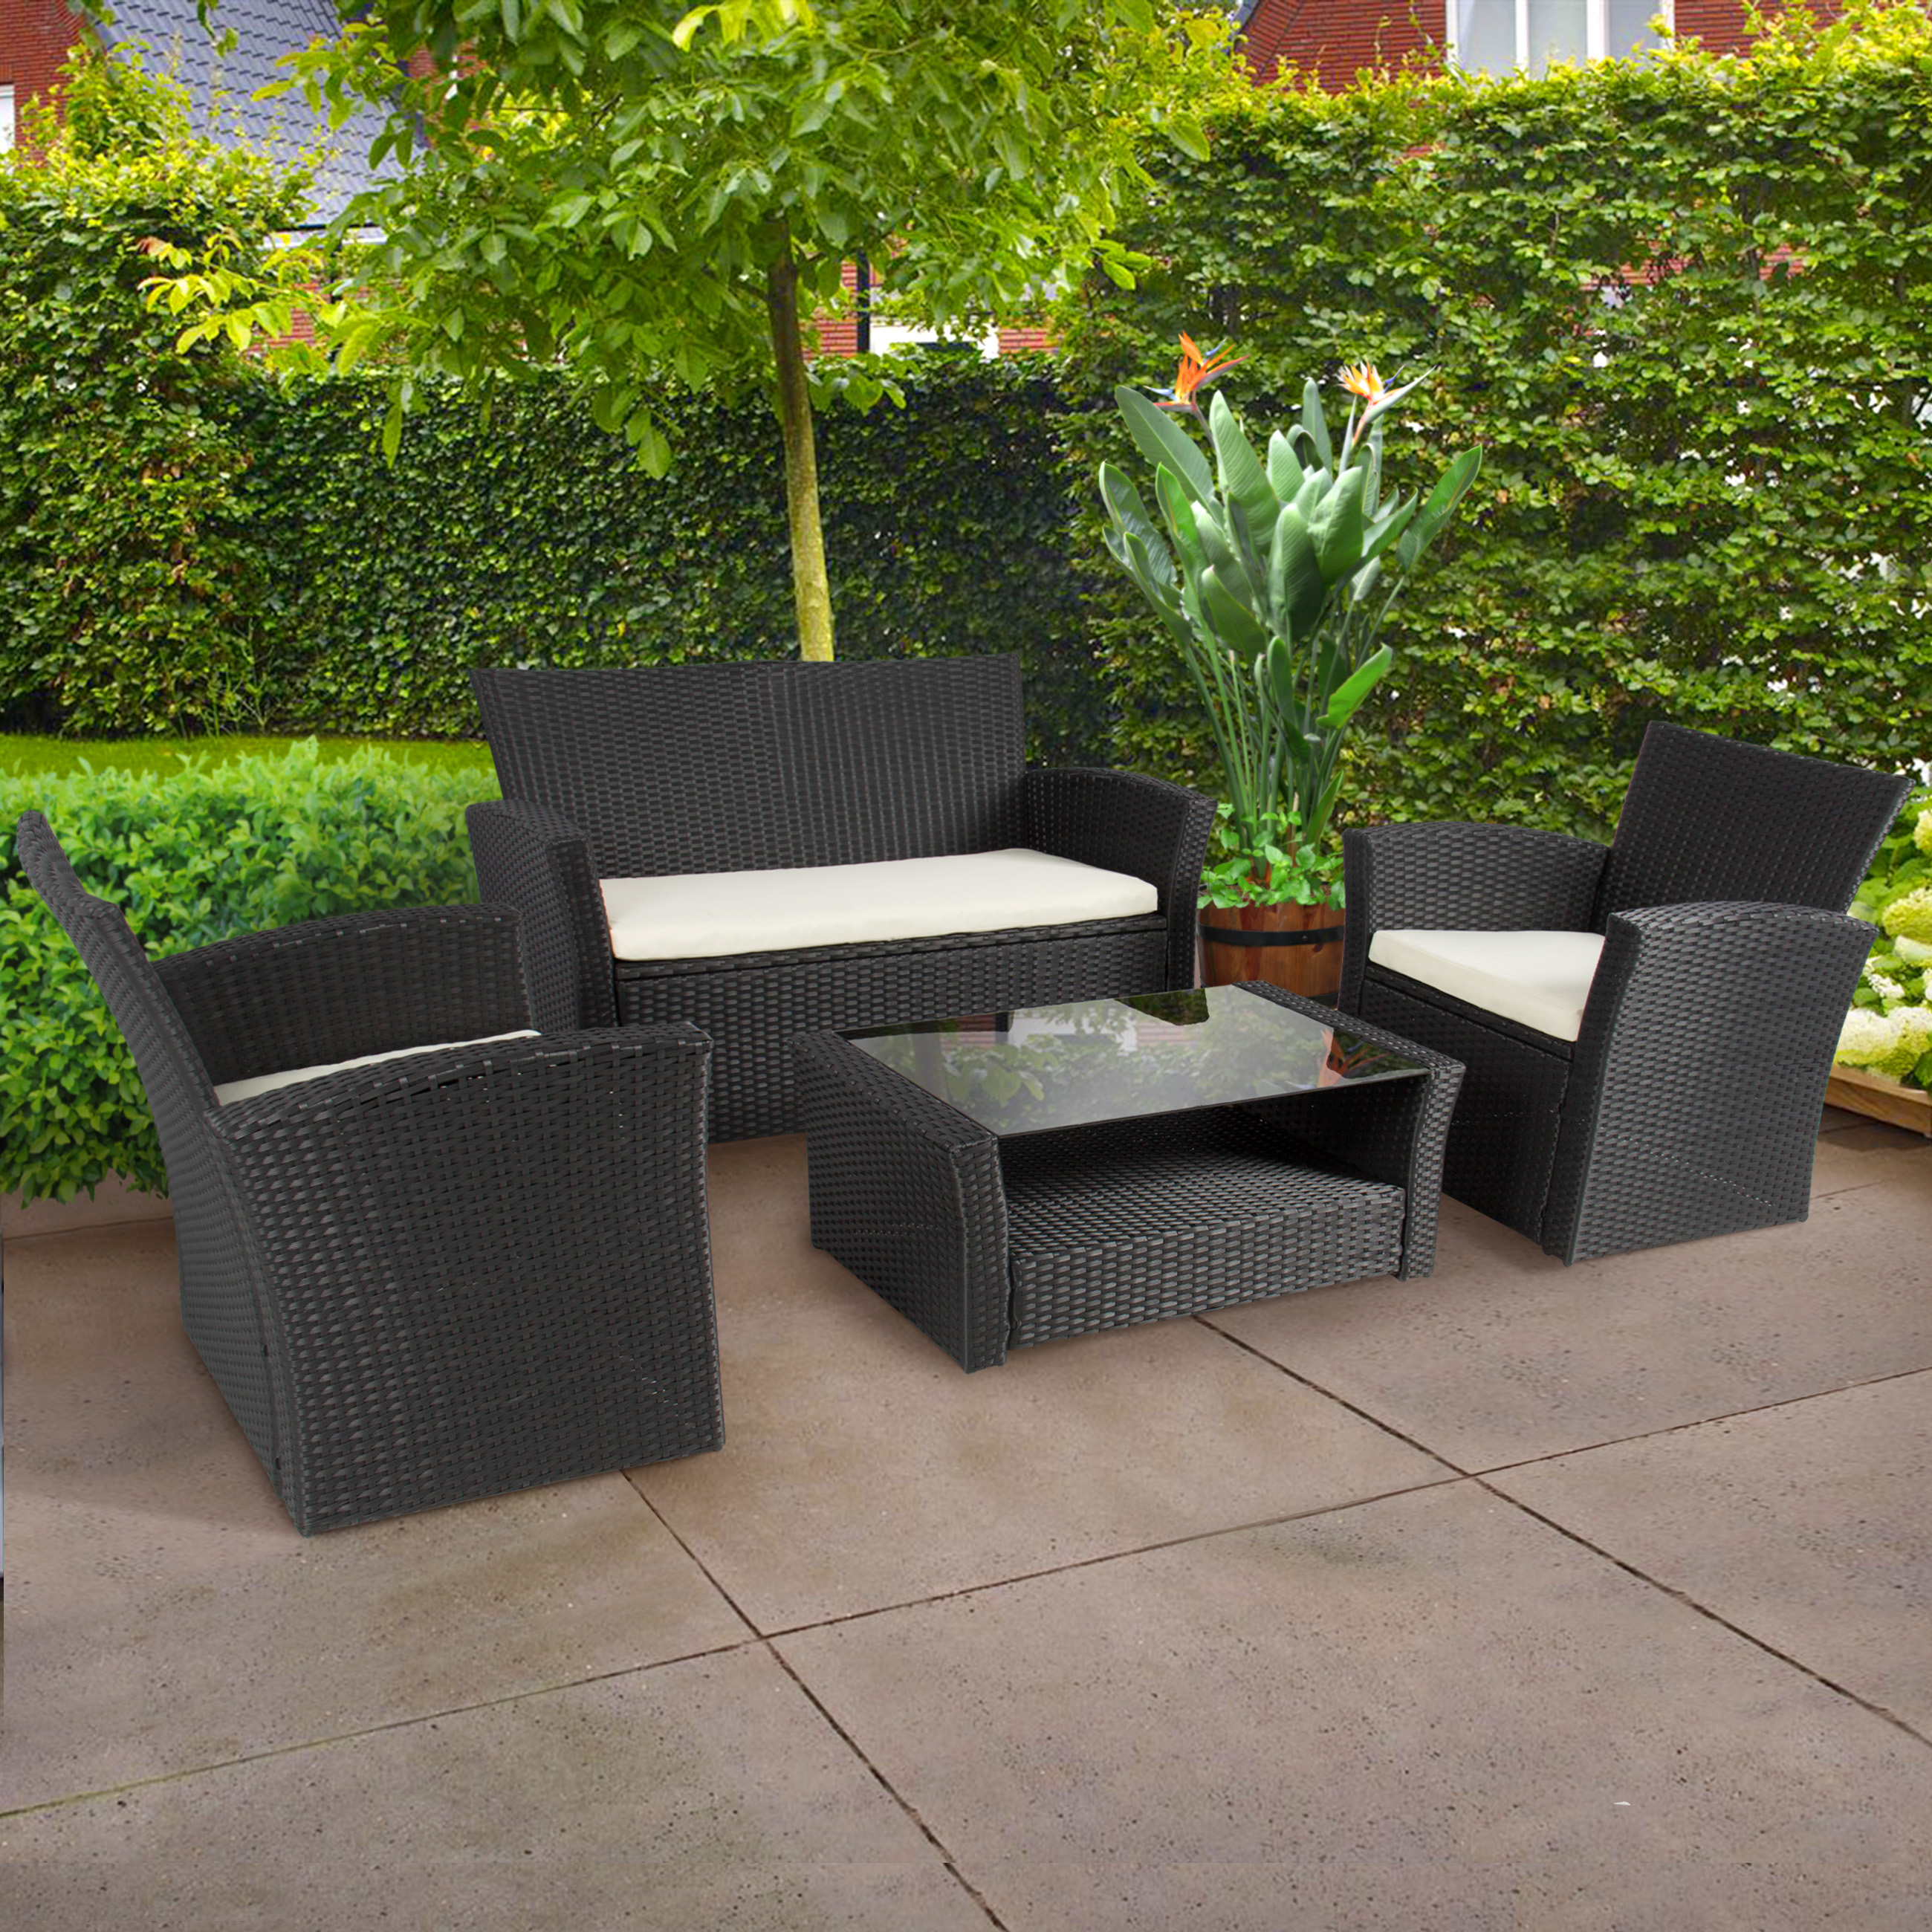 Garden Furniture 4 U Ltd modren garden furniture 4 u ltd to throughout decorating ideas